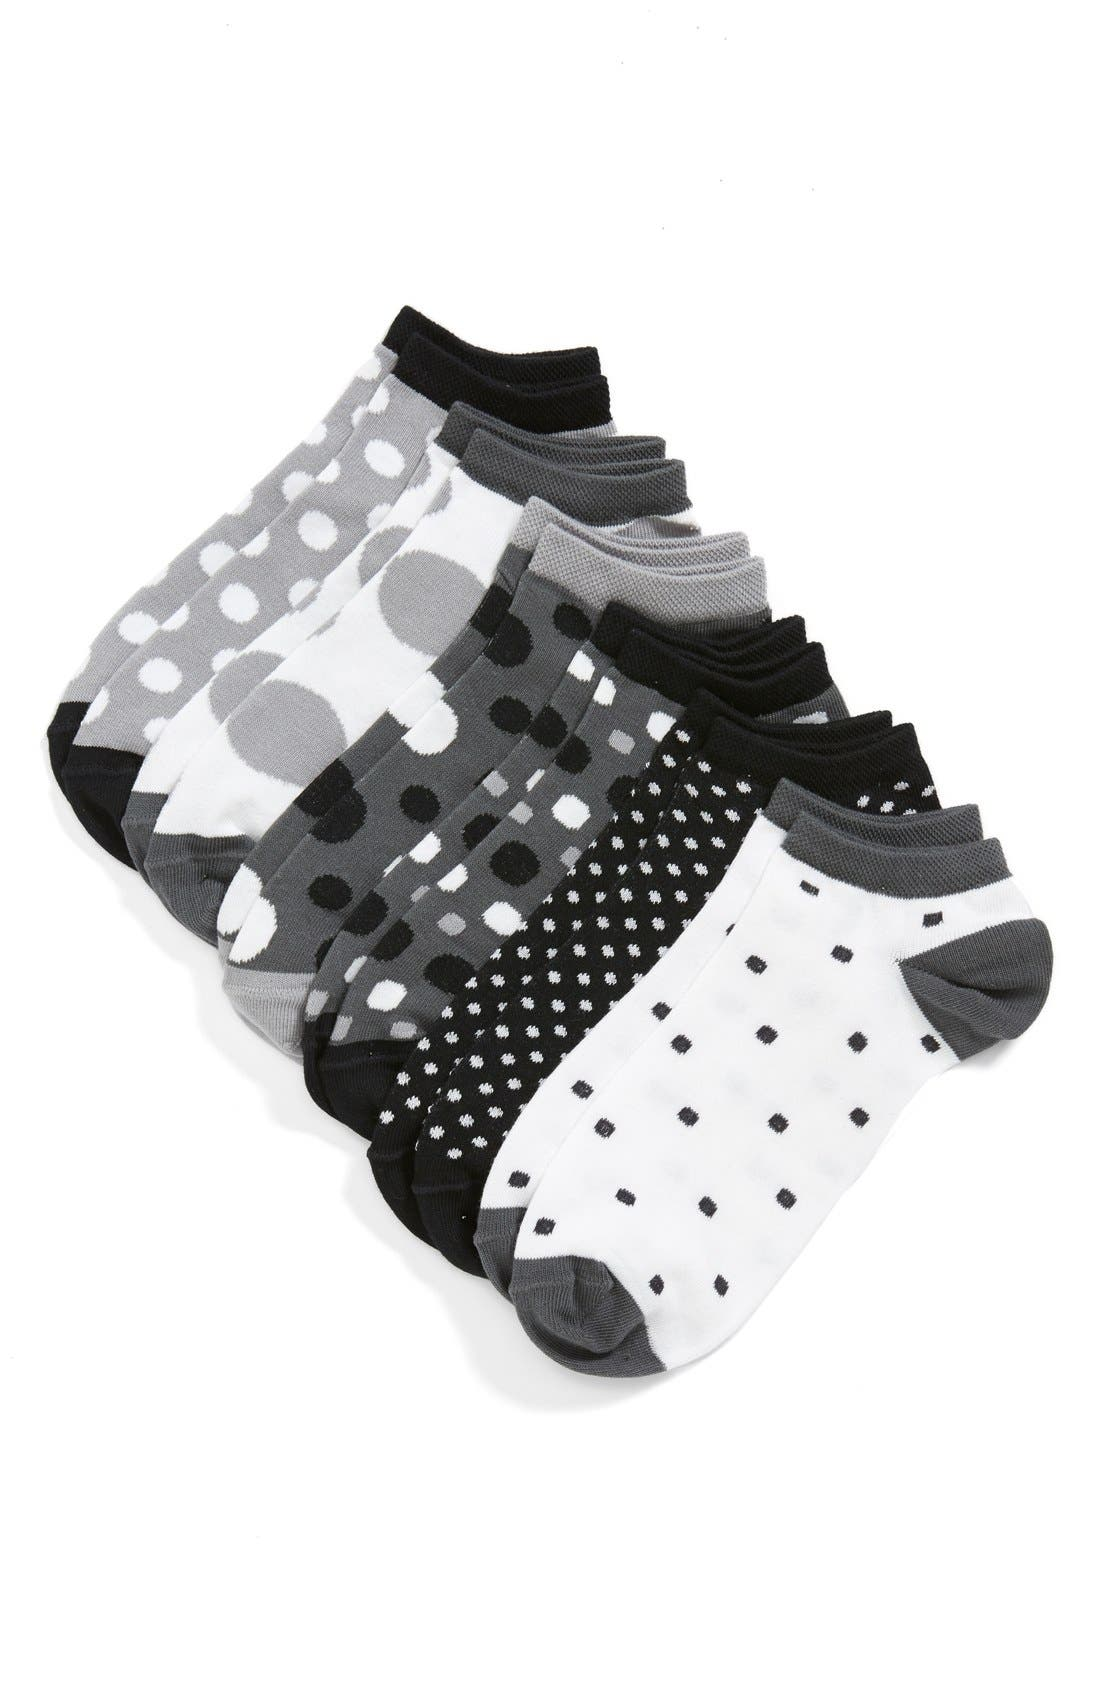 Alternate Image 1 Selected - Tucker + Tate 'Dotty Dots' Low-Cut Socks (6-Pack) (Toddler, Little Kid & Big Kid)